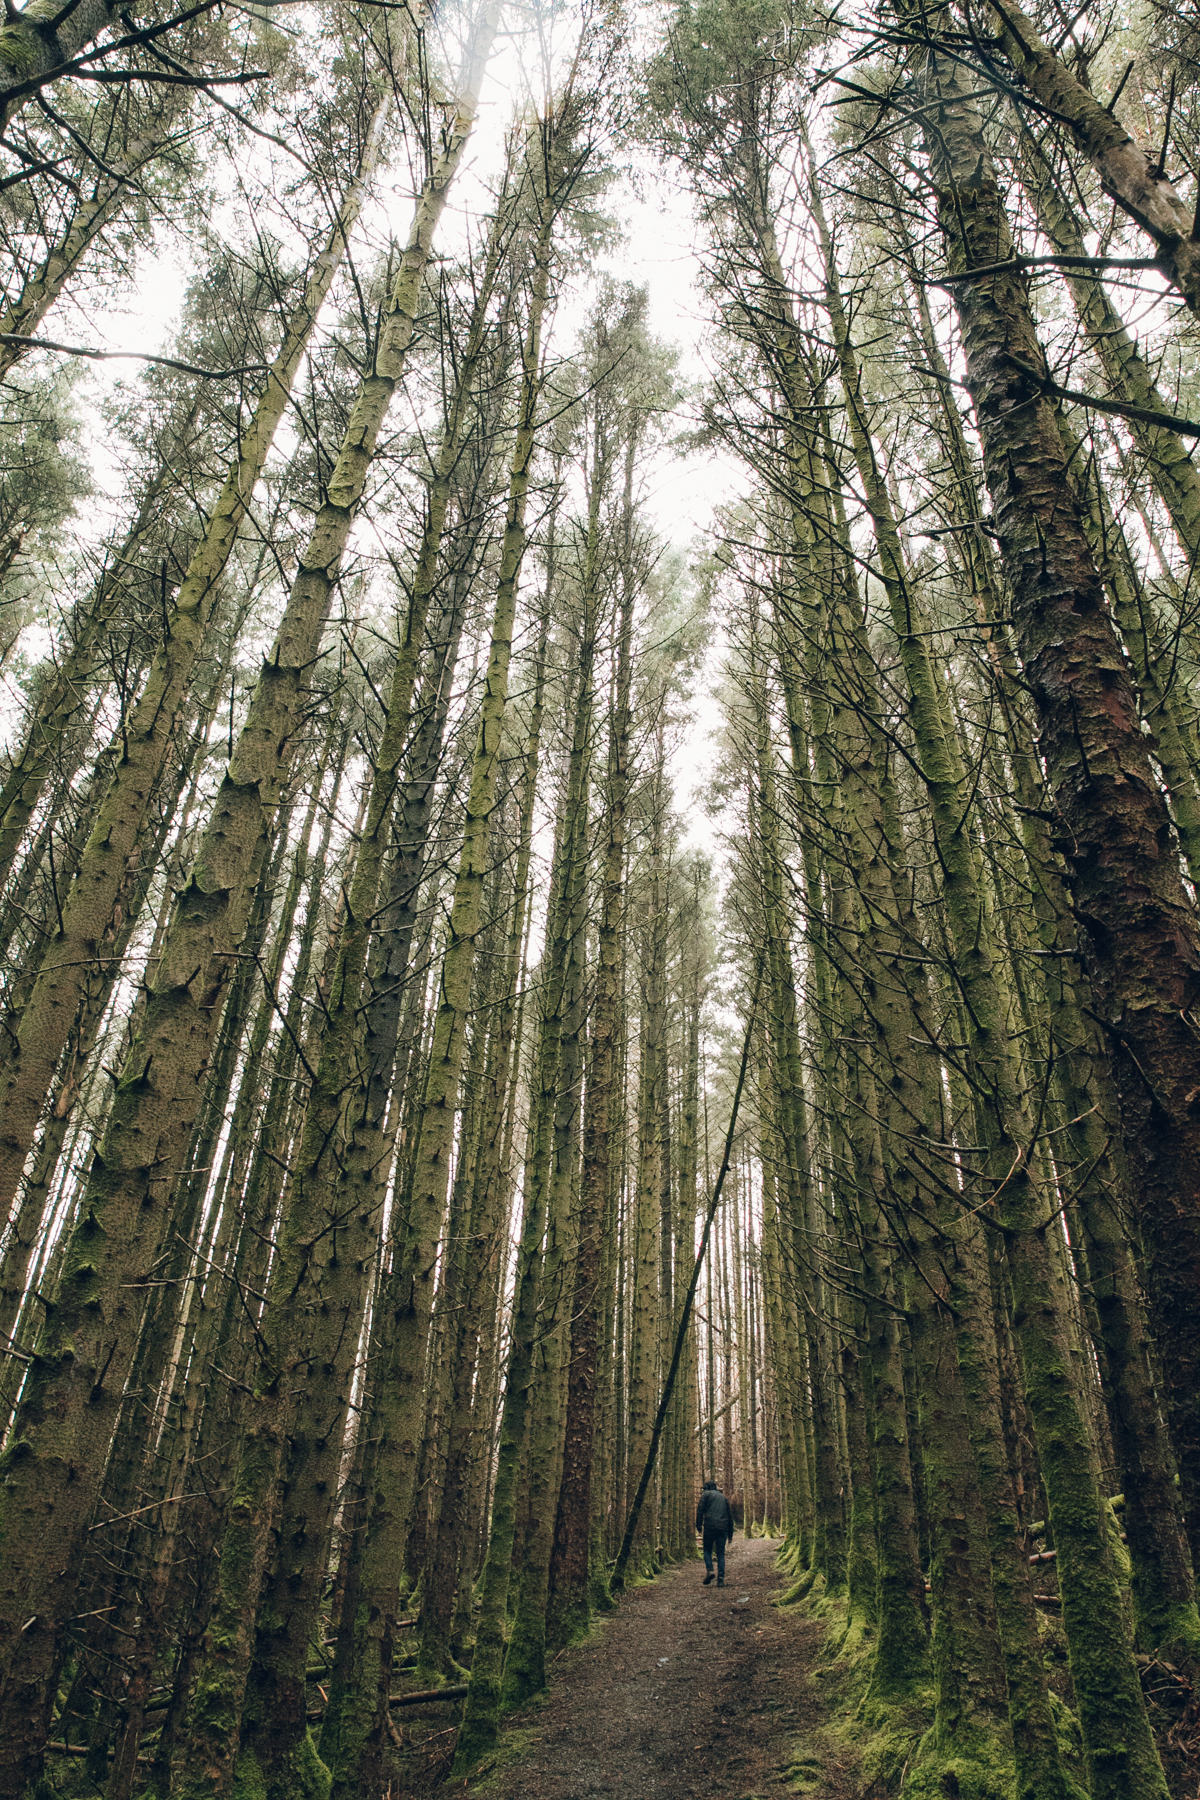 Tall tall trees in a forest on the Isle of Skye.